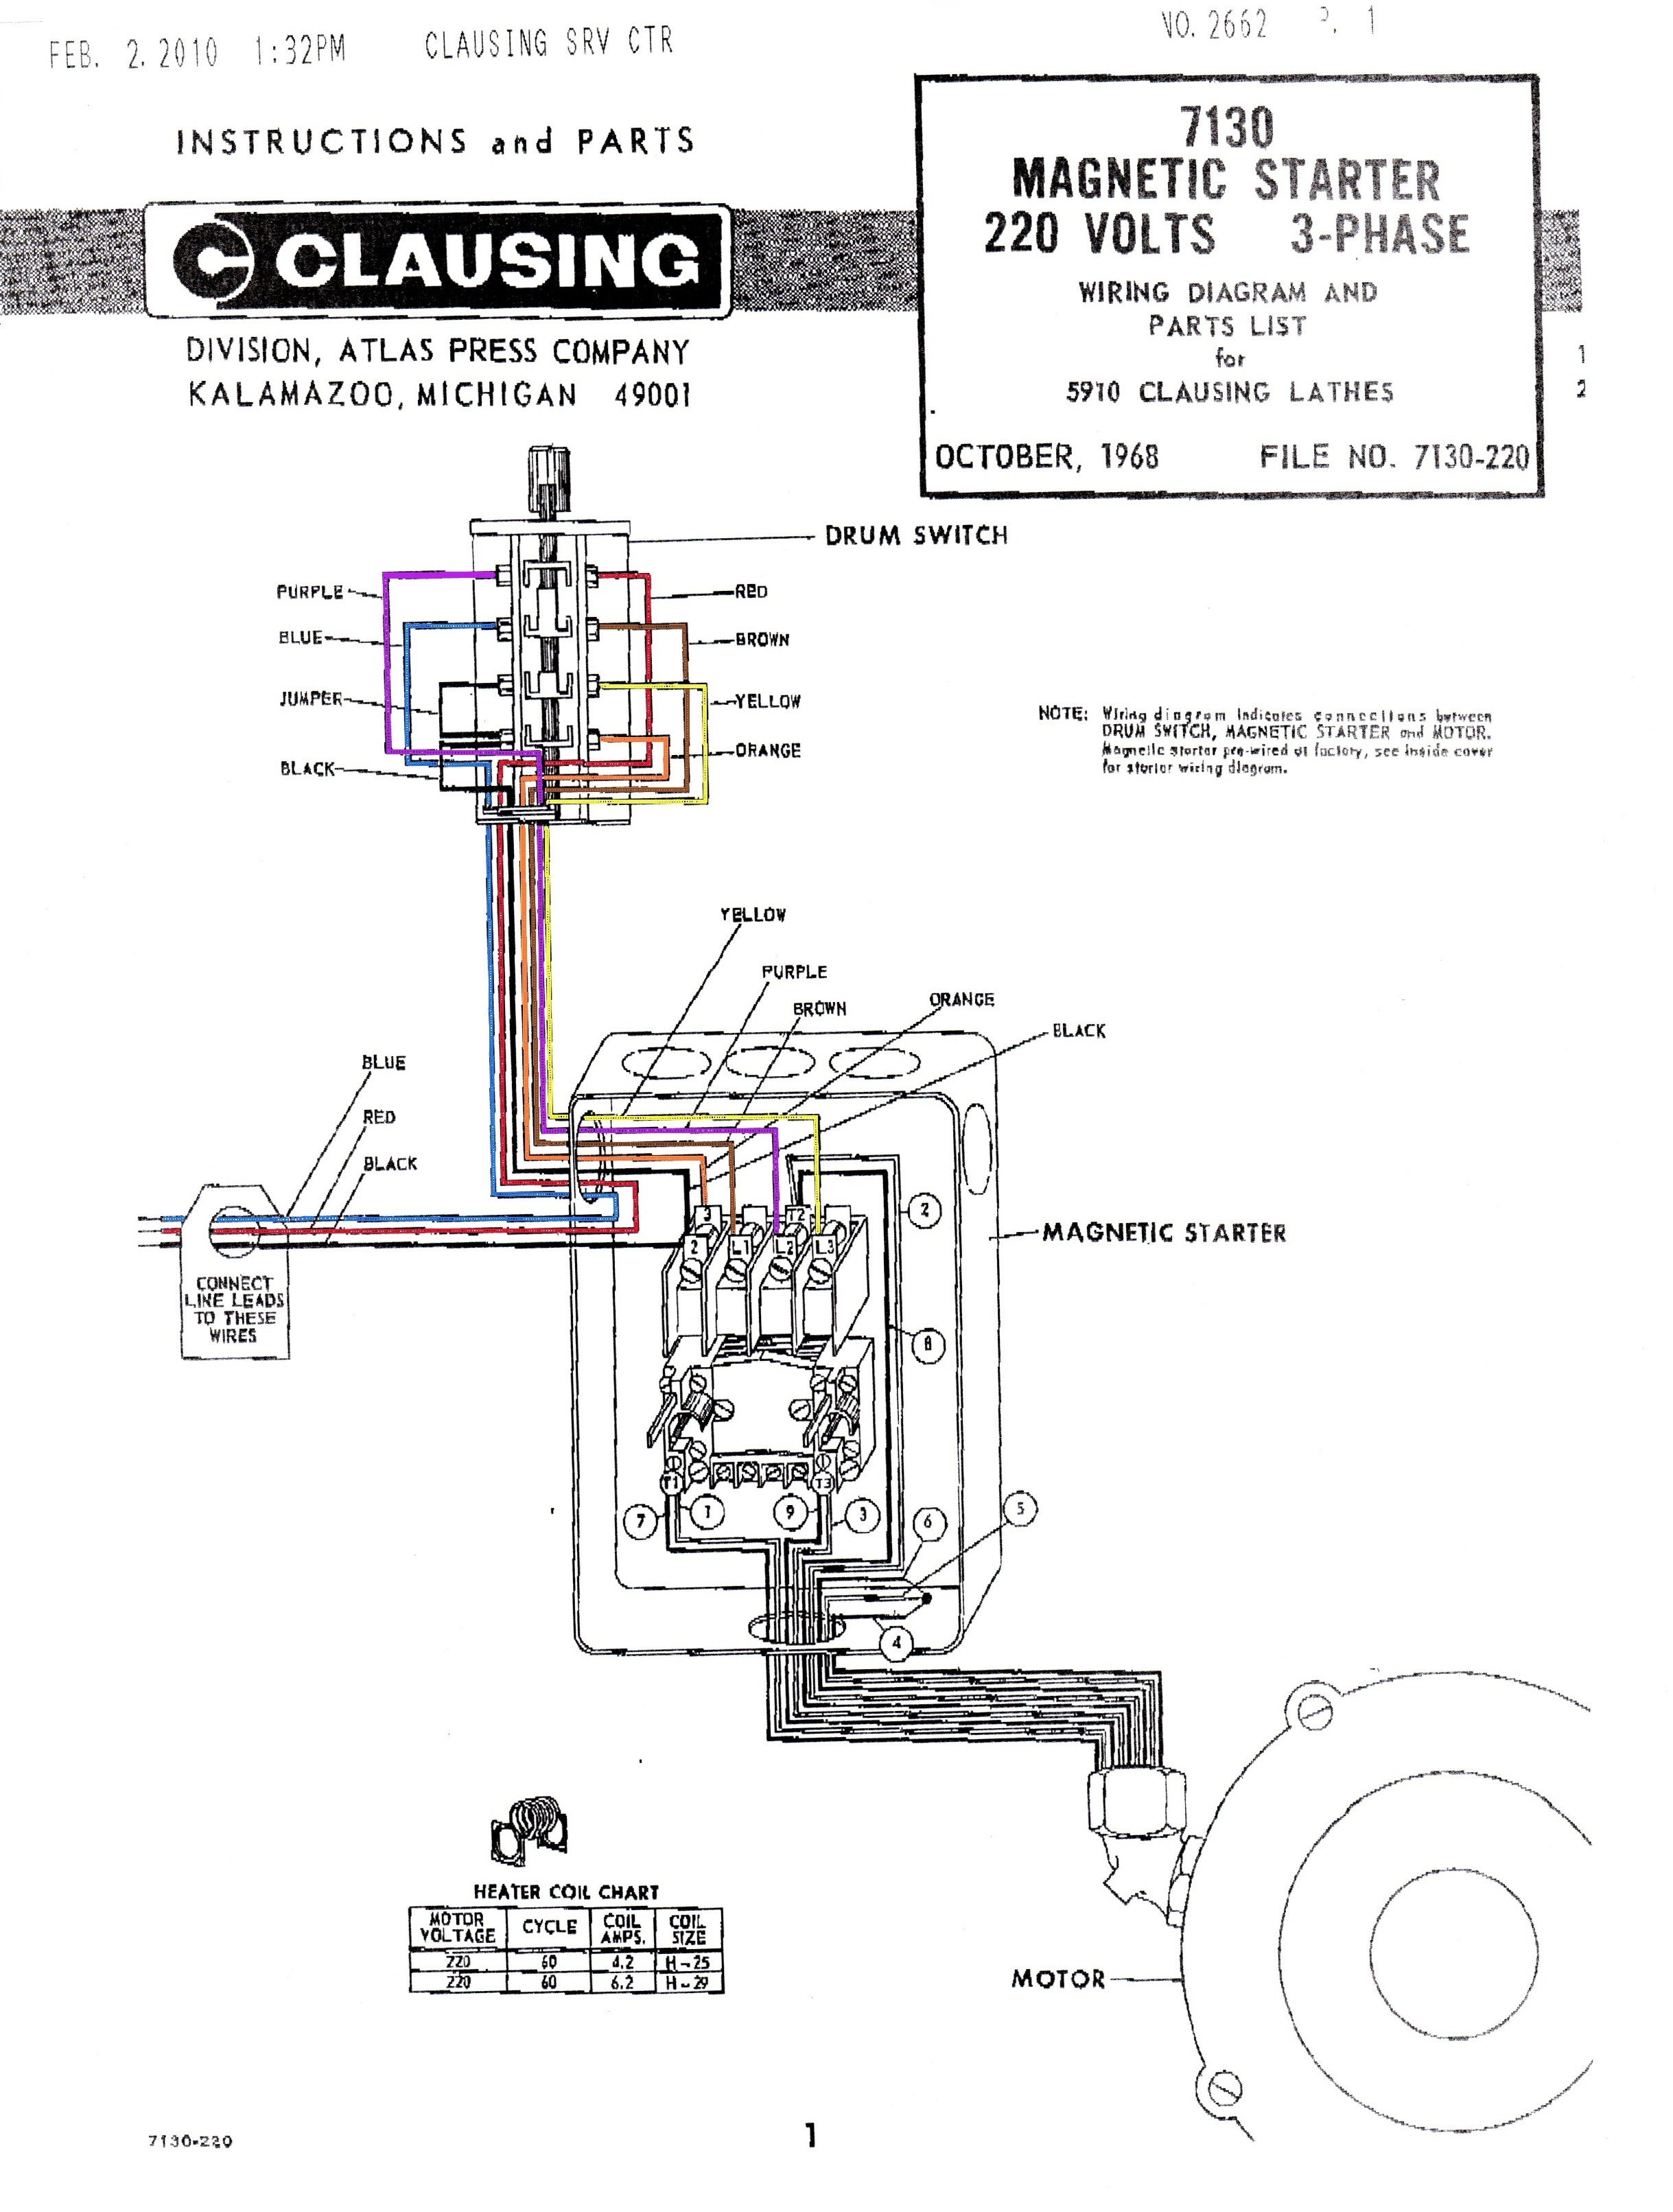 Ge Motor Wiring Diagram Wires - All Diagram Schematics on